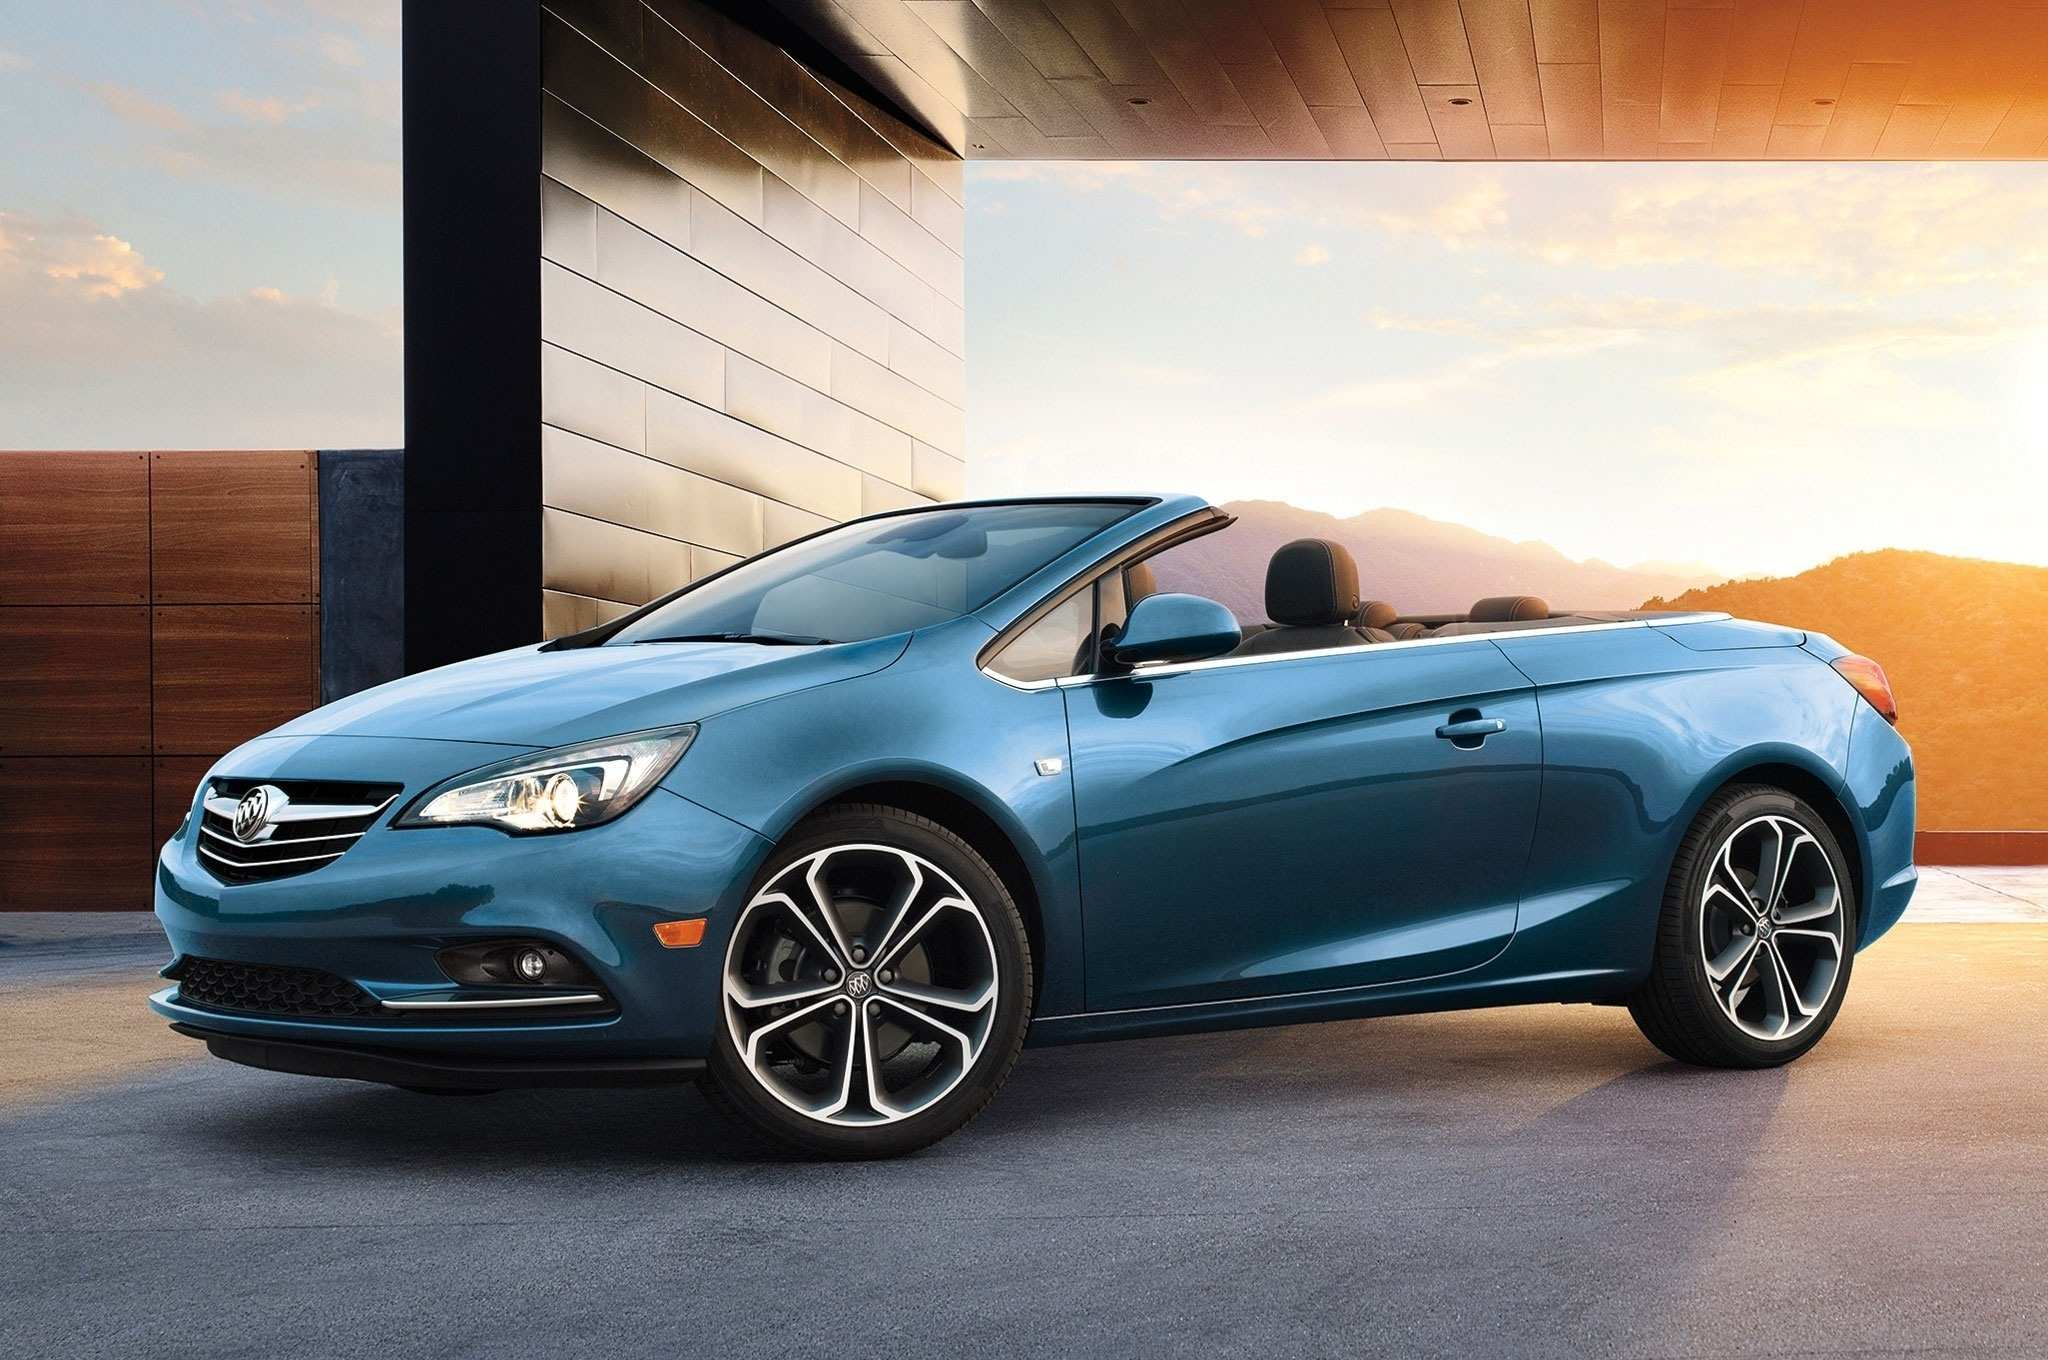 15 Great 2019 Chrysler 200 Convertible Prices with 2019 Chrysler 200 Convertible